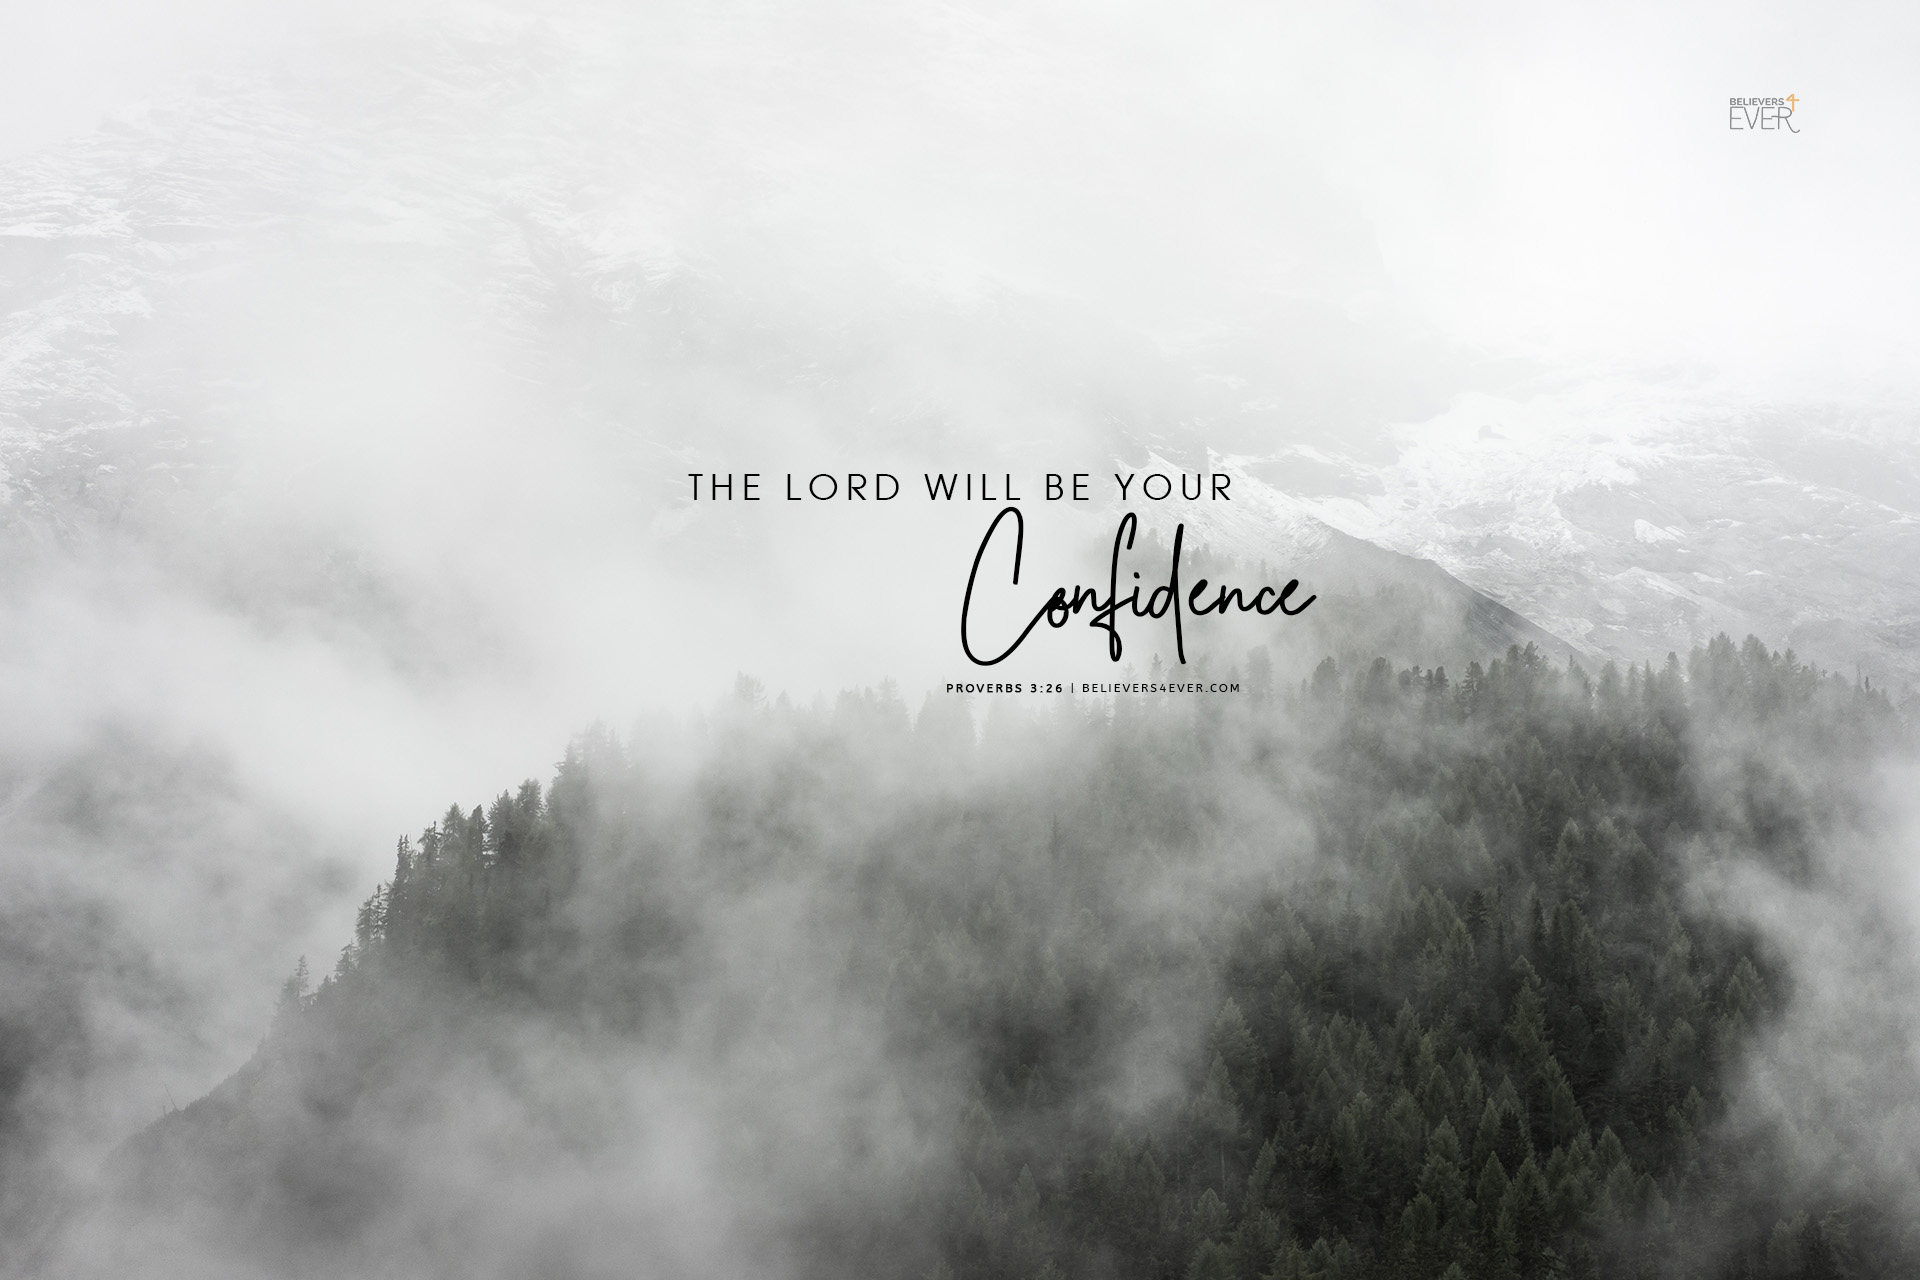 Christian Computer Backgrounds Posted By Samantha Peltier